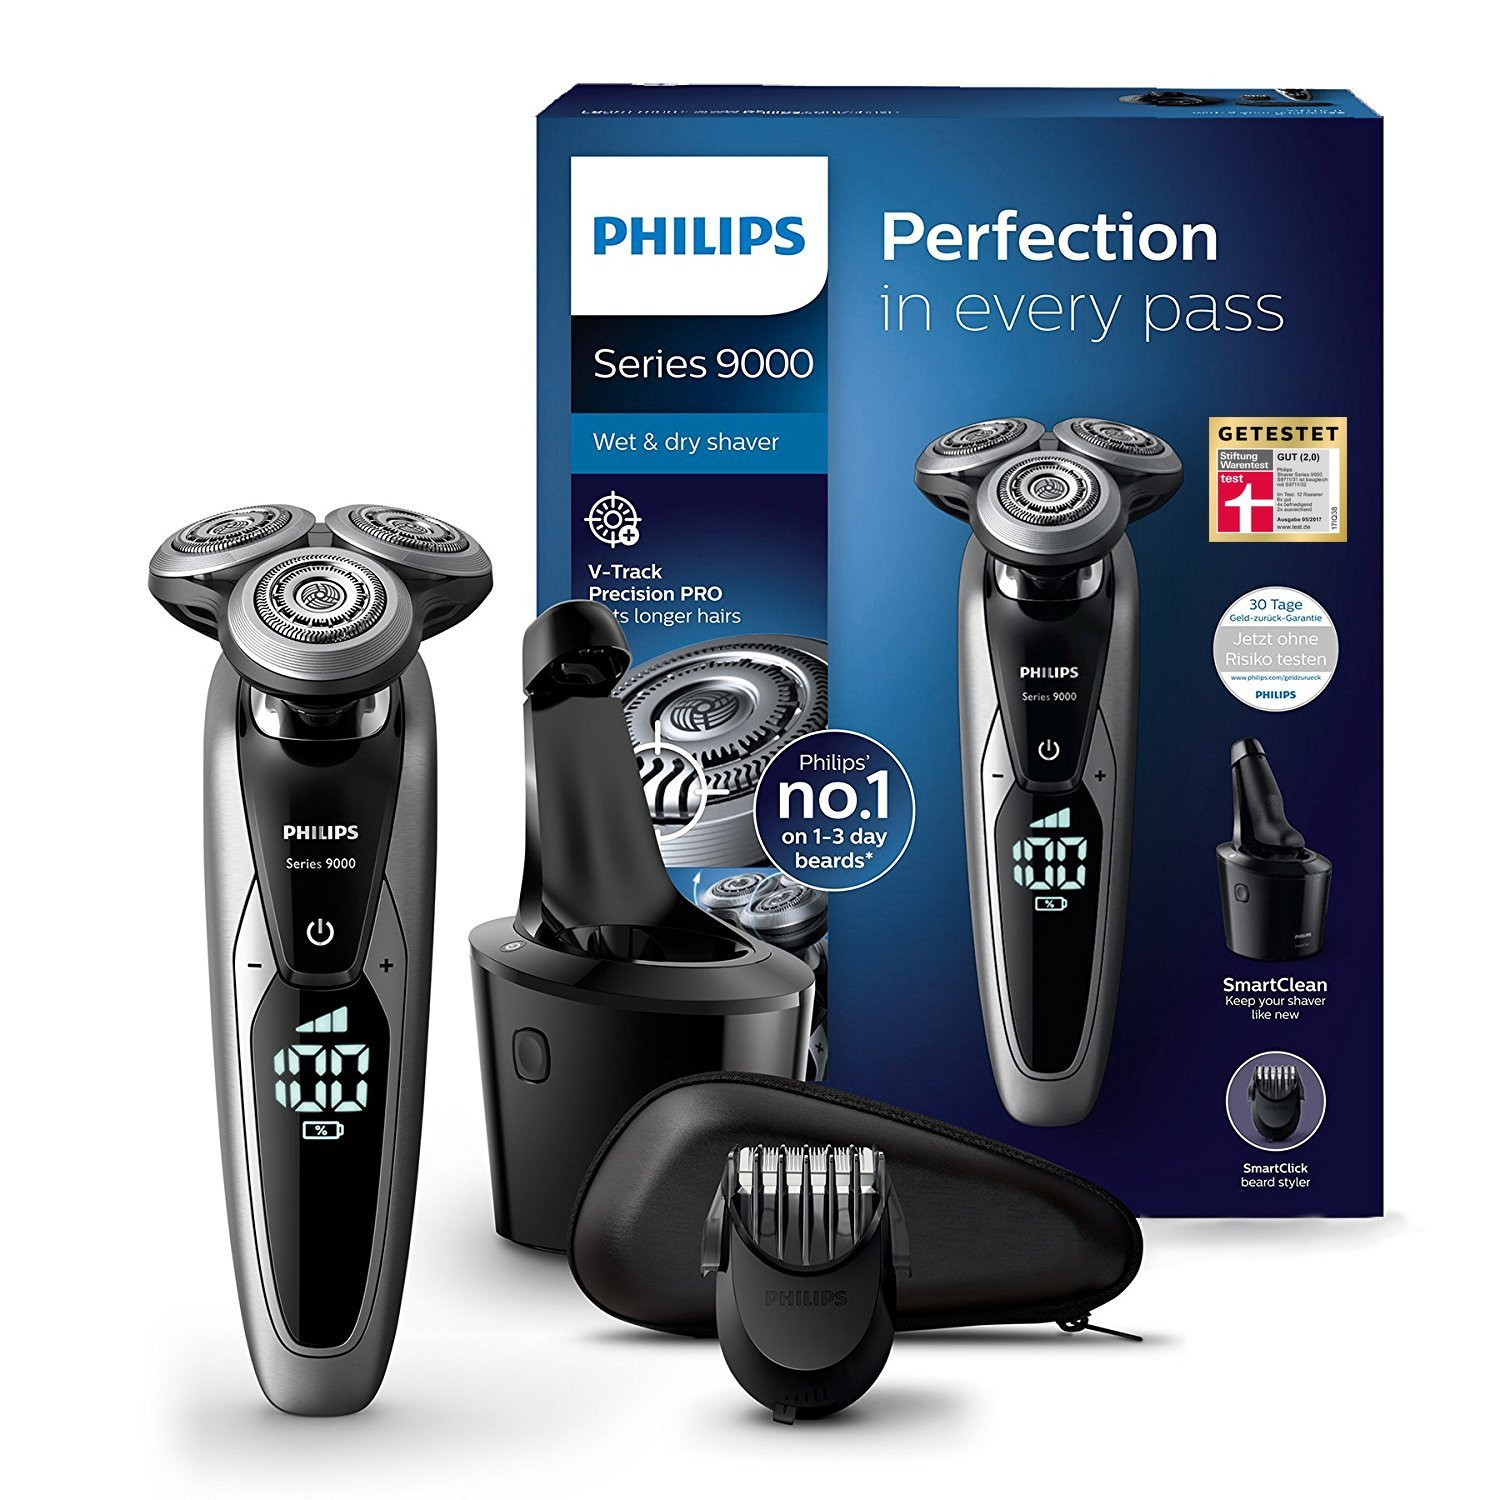 Philips Rasierer amazon